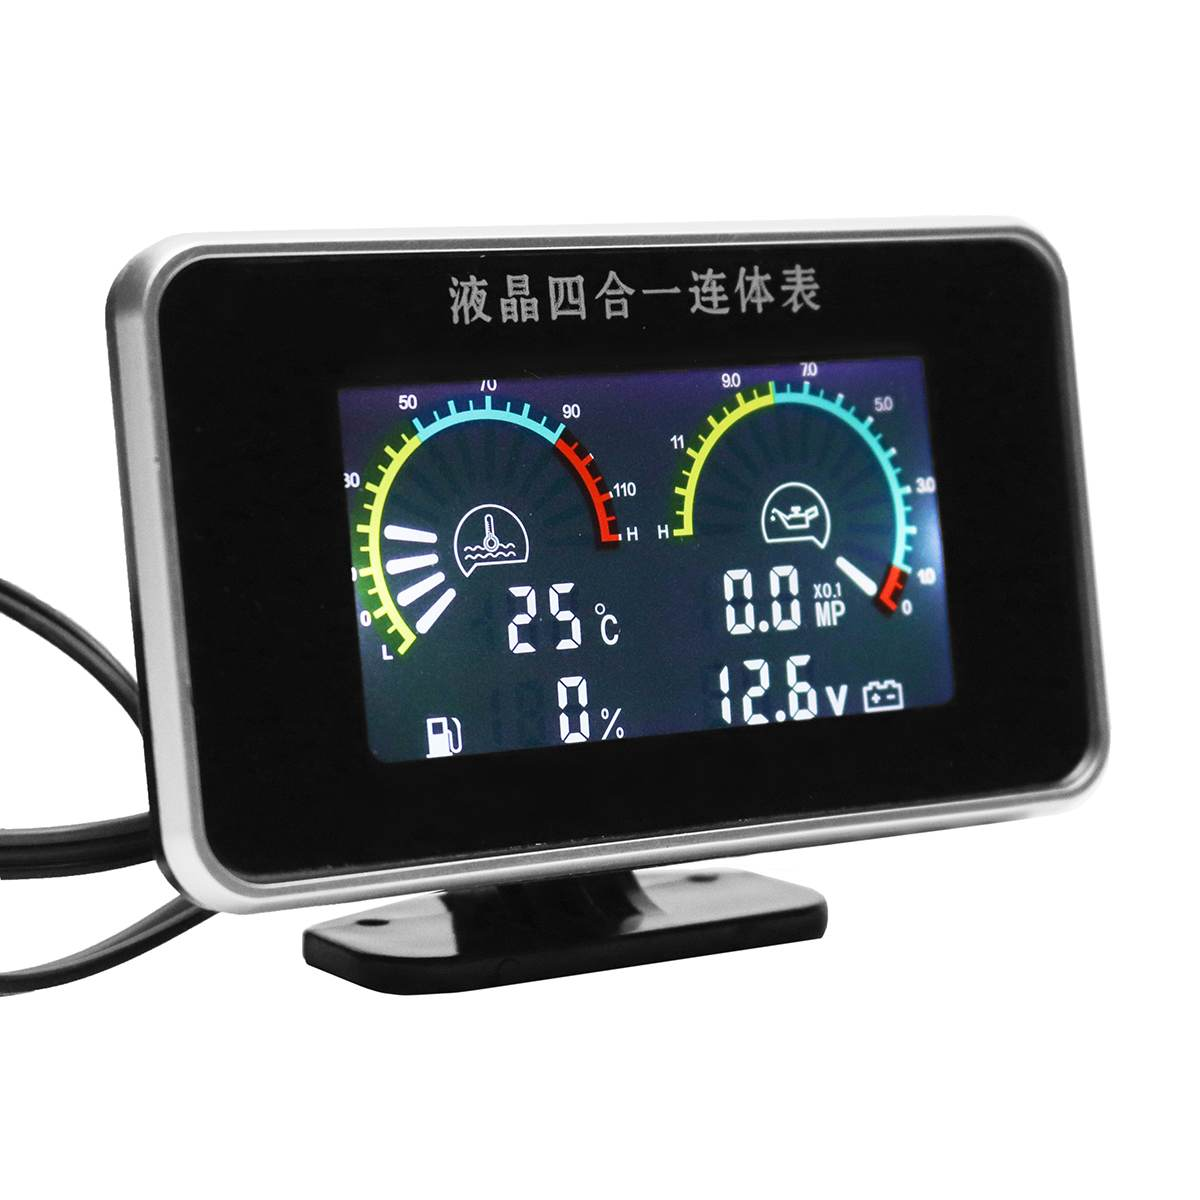 Auto Replacement Parts 12V 24V 4in1 LCD Car Digital Gauge Oil Voltage Pressure Fuel Water Temp Meter M10